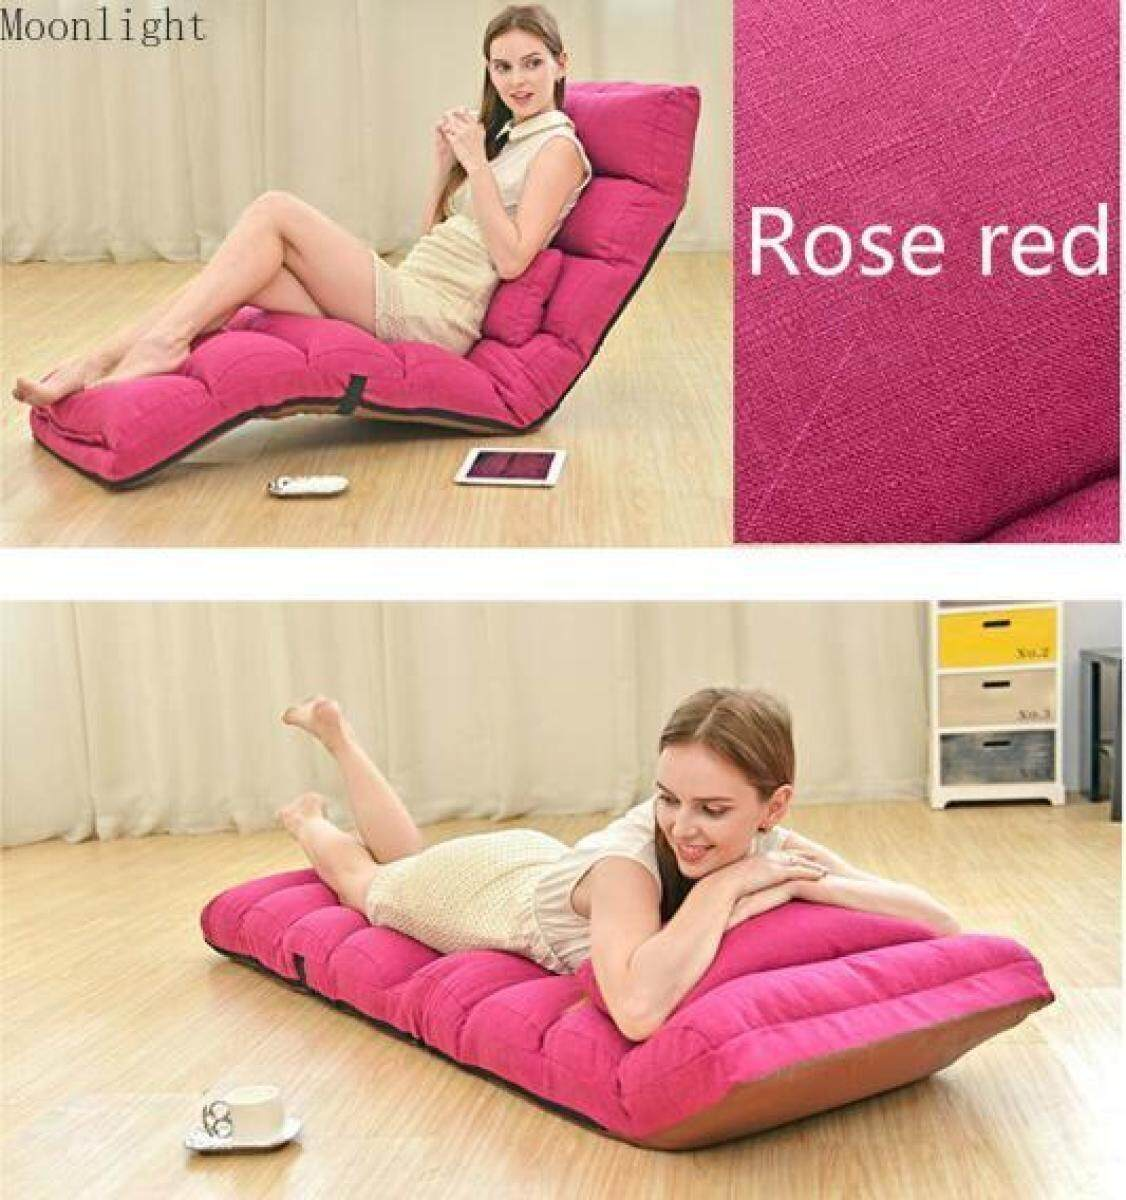 Miraculous Moonlight Casa Relaxing Folding Sofa Chaise Lounge Chair Home Adjustable Folding Lazy Sofa Bed Relax Chair Floor Cushion Multiangle Couch Beds For Cjindustries Chair Design For Home Cjindustriesco